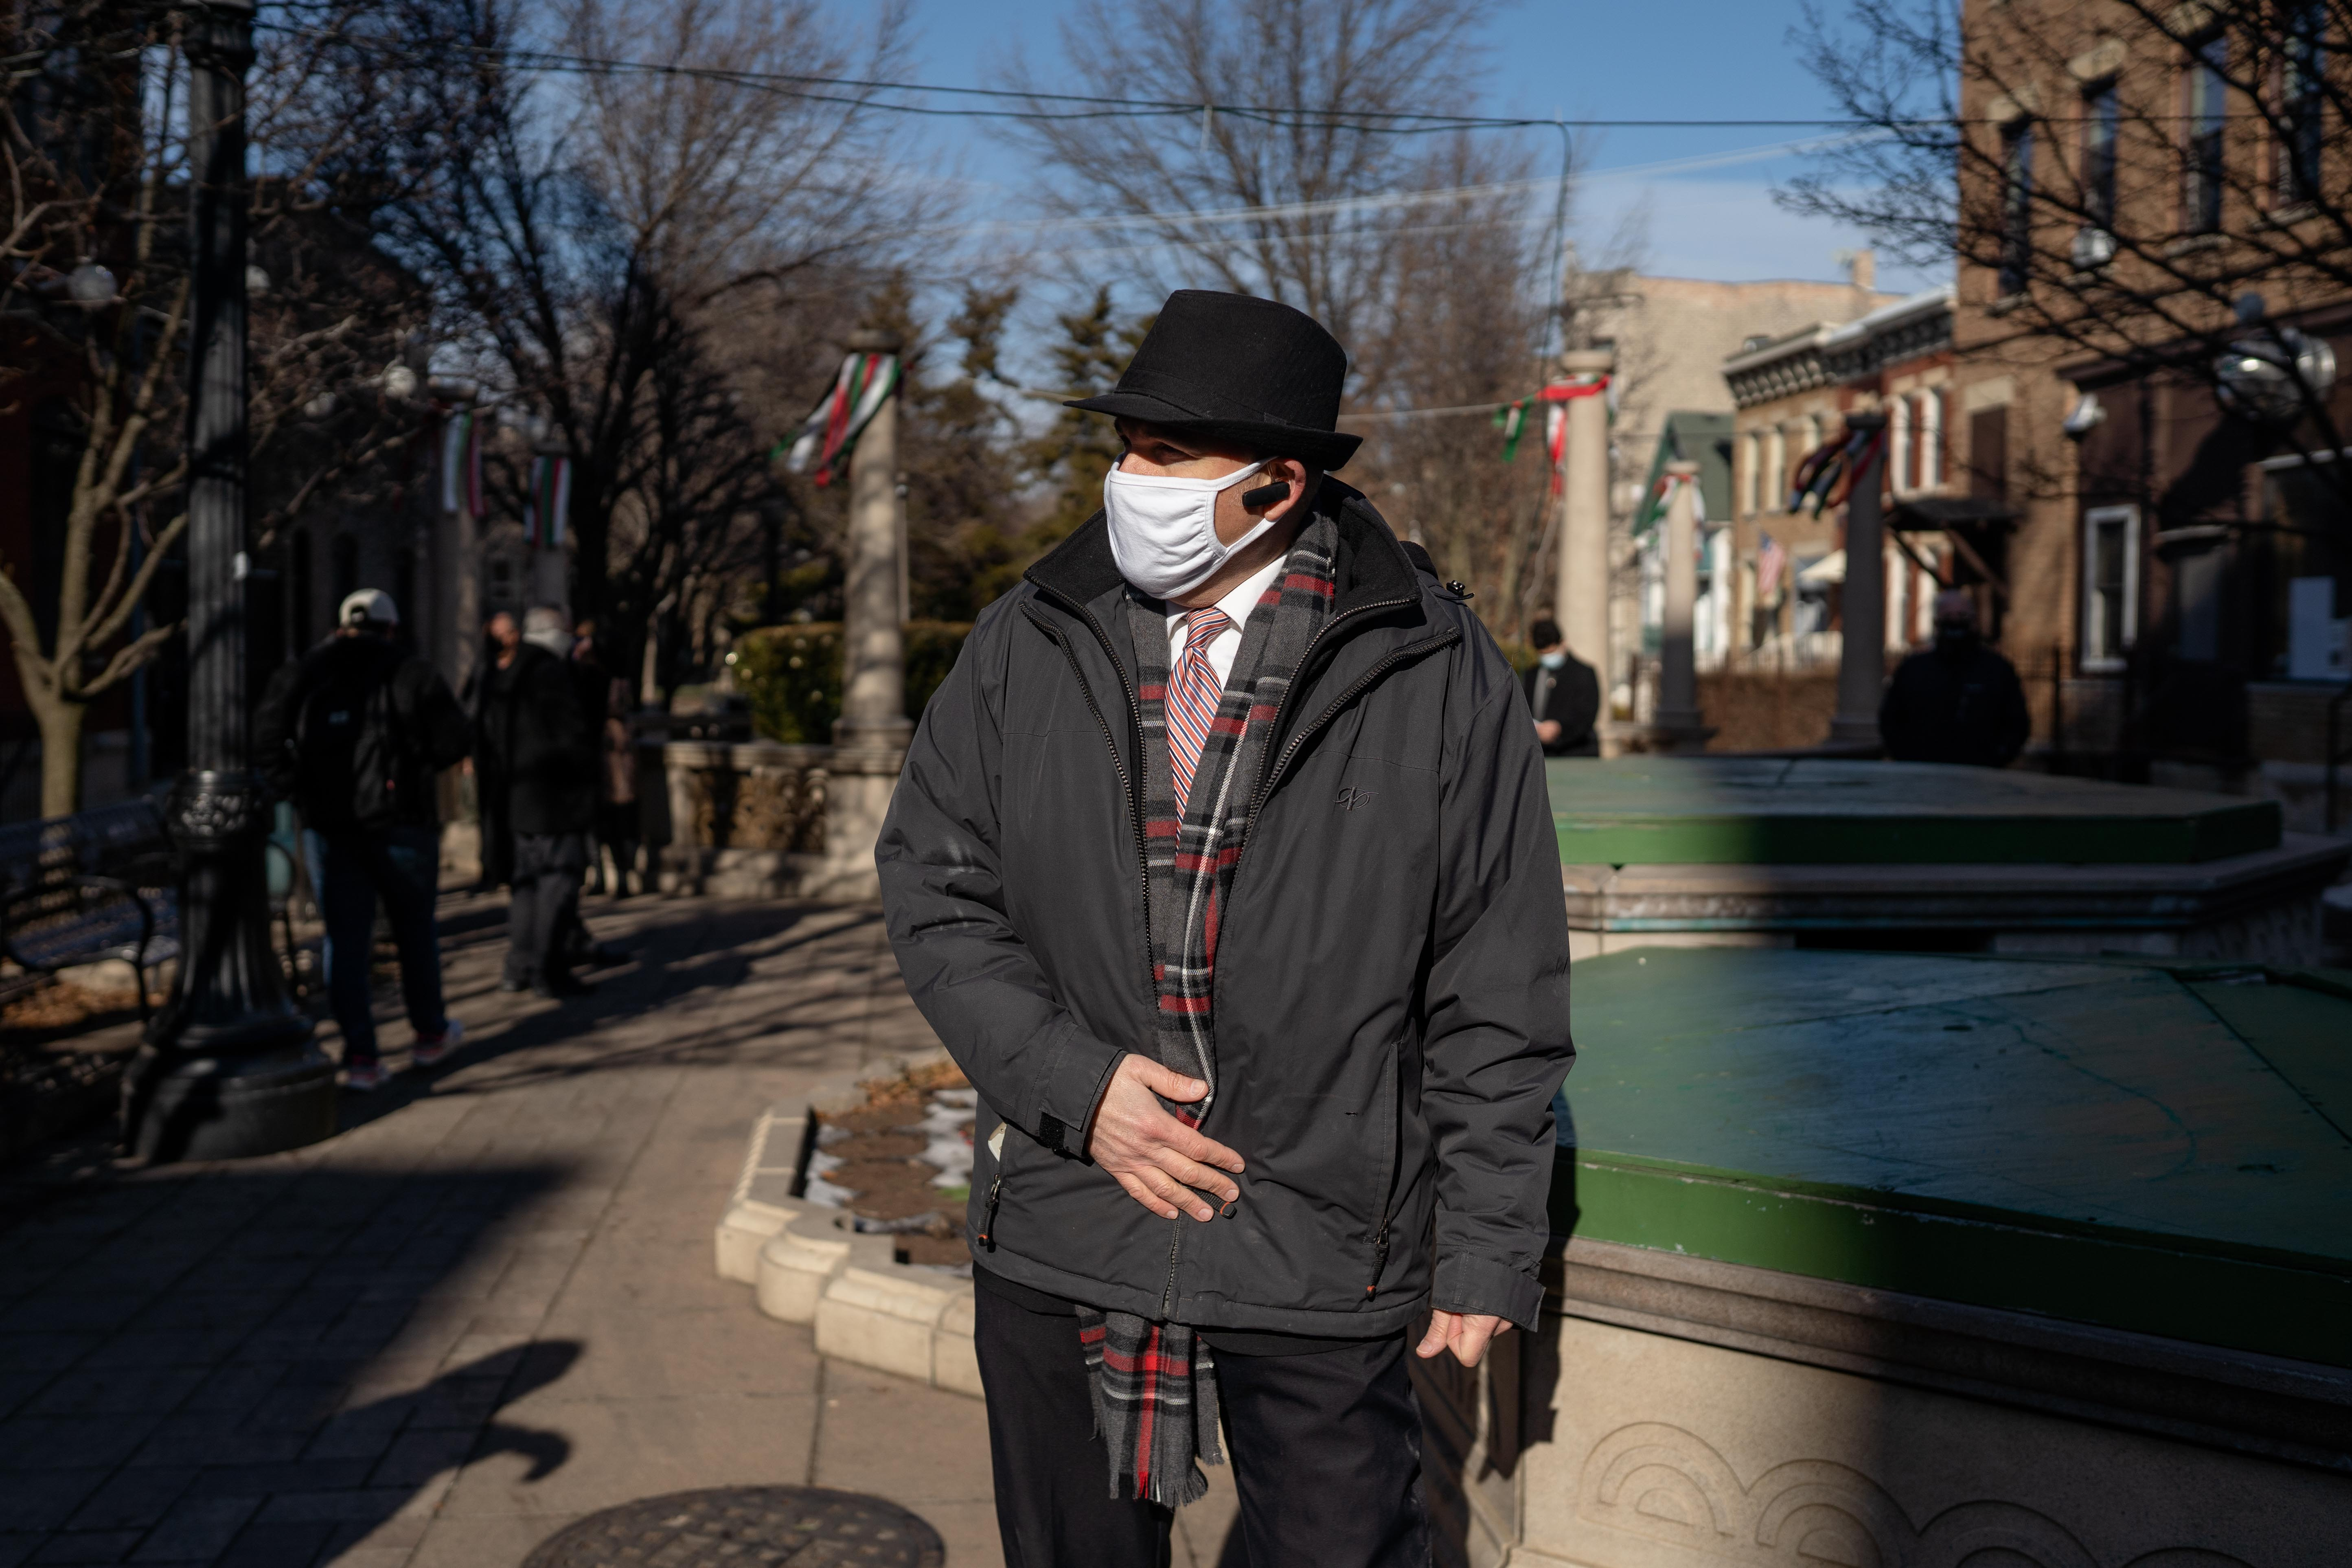 Roger Romanelli, the Chicago Restaurants Coalition coordinator, stands at the Taylor Street Public Plaza in the Little Italy neighborhood on Jan. 12, 2021.